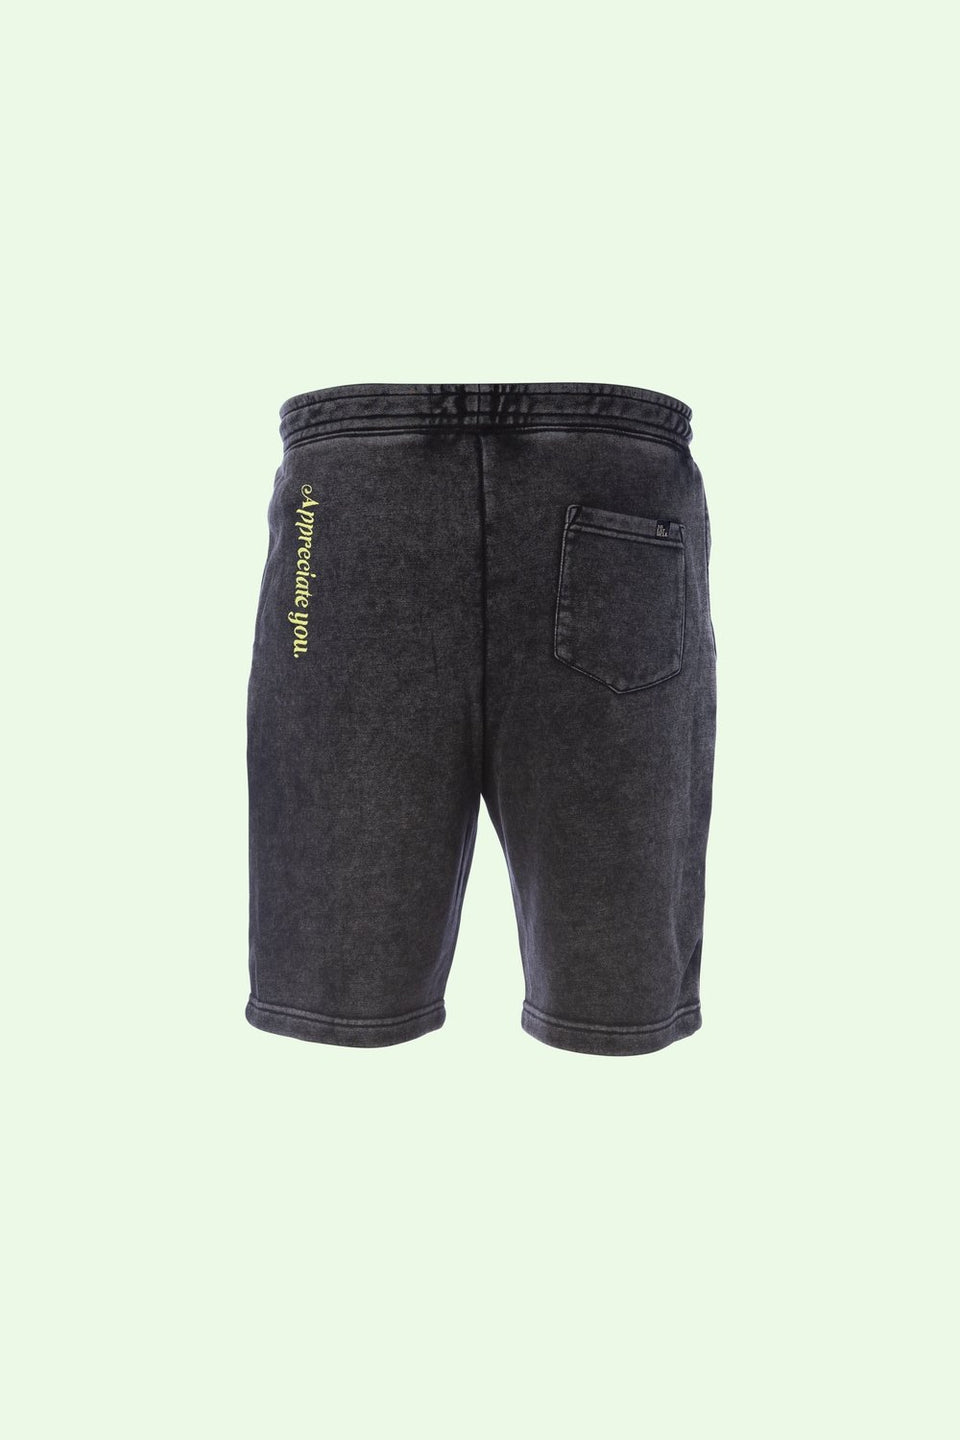 "Sweatshorts in Mineral Wash ""Ash"" - MR EATWELL"